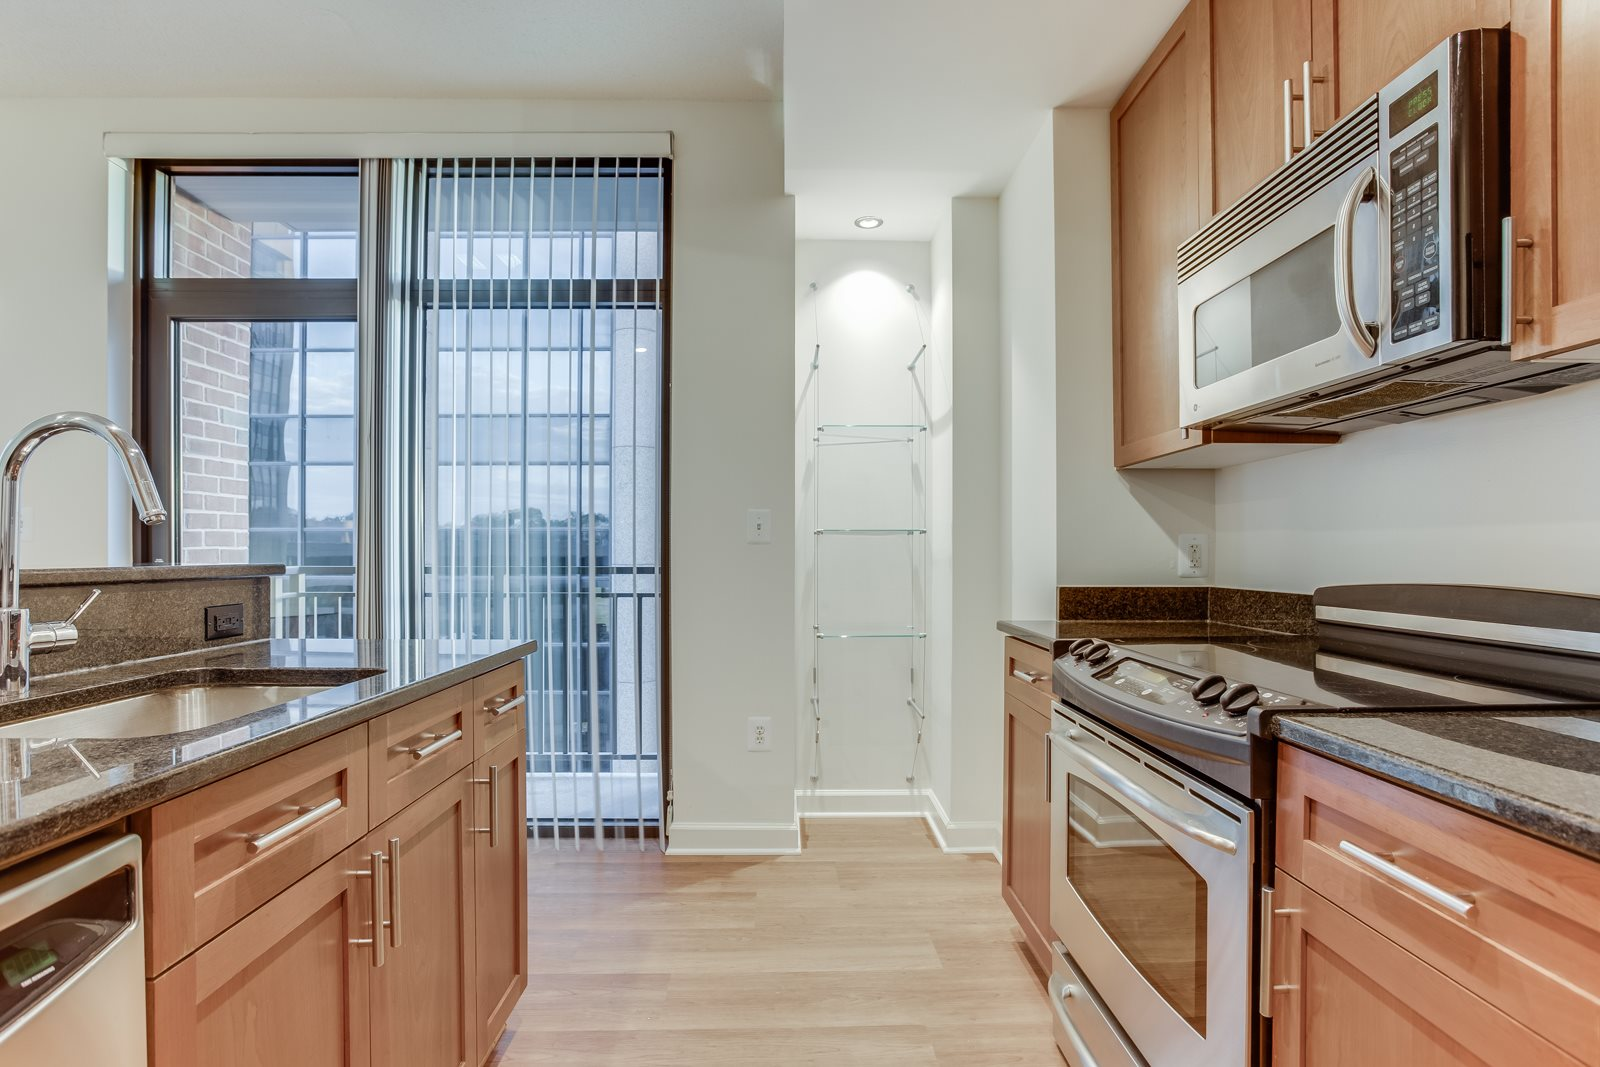 Private Balconies in Select Apartments at Halstead Tower by Windsor, Virginia, 22302